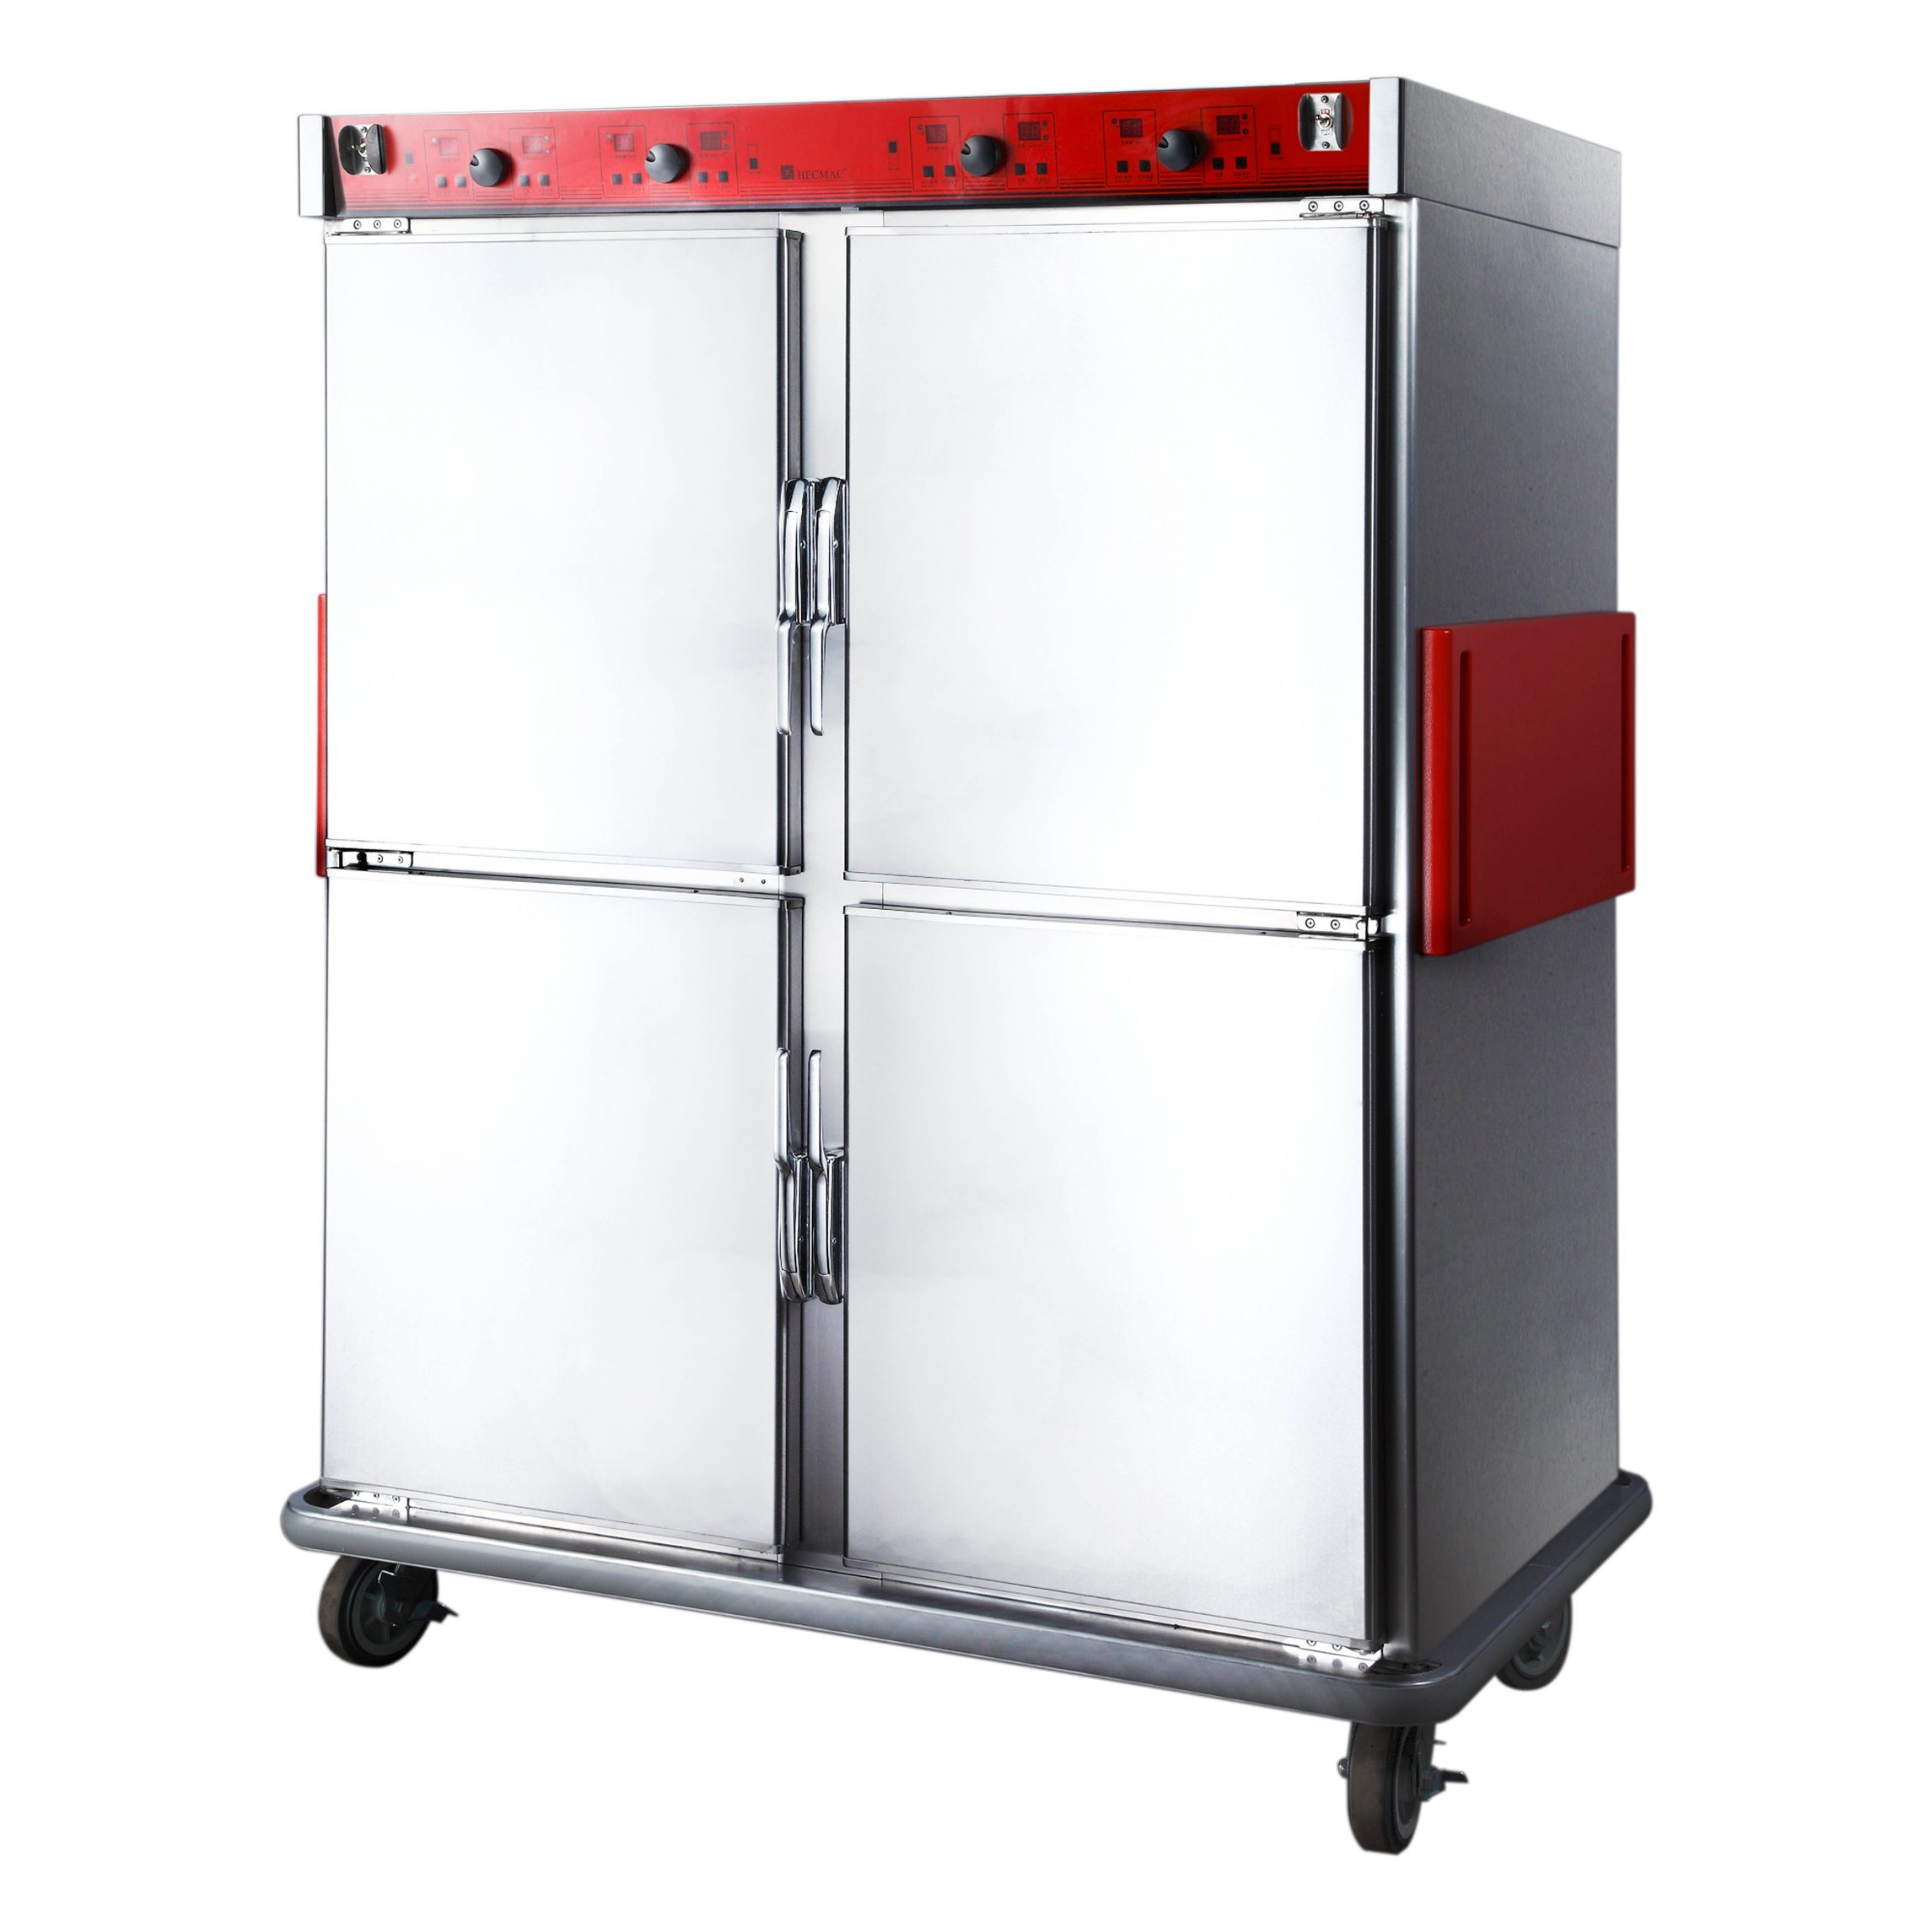 Commercial Food Warmer Cabinet ~ Commercial bread warmer cabinet images heatmax